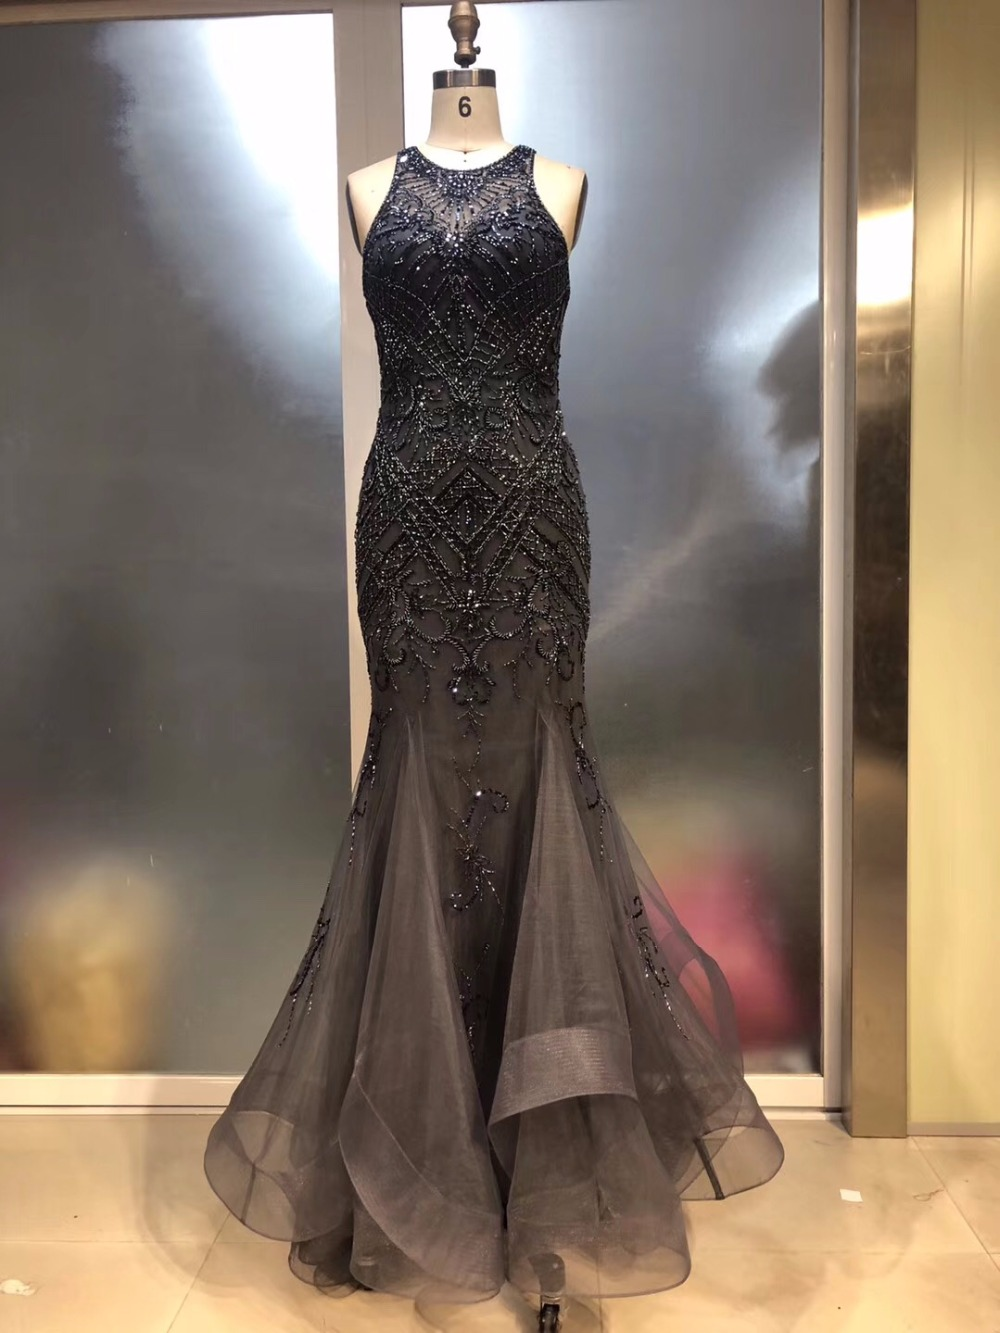 New Elegant Halter Evening Dress 2019 Dark Gray Beaded Mermaid Prom Dresses Sleeveless Women Party Gown(China)